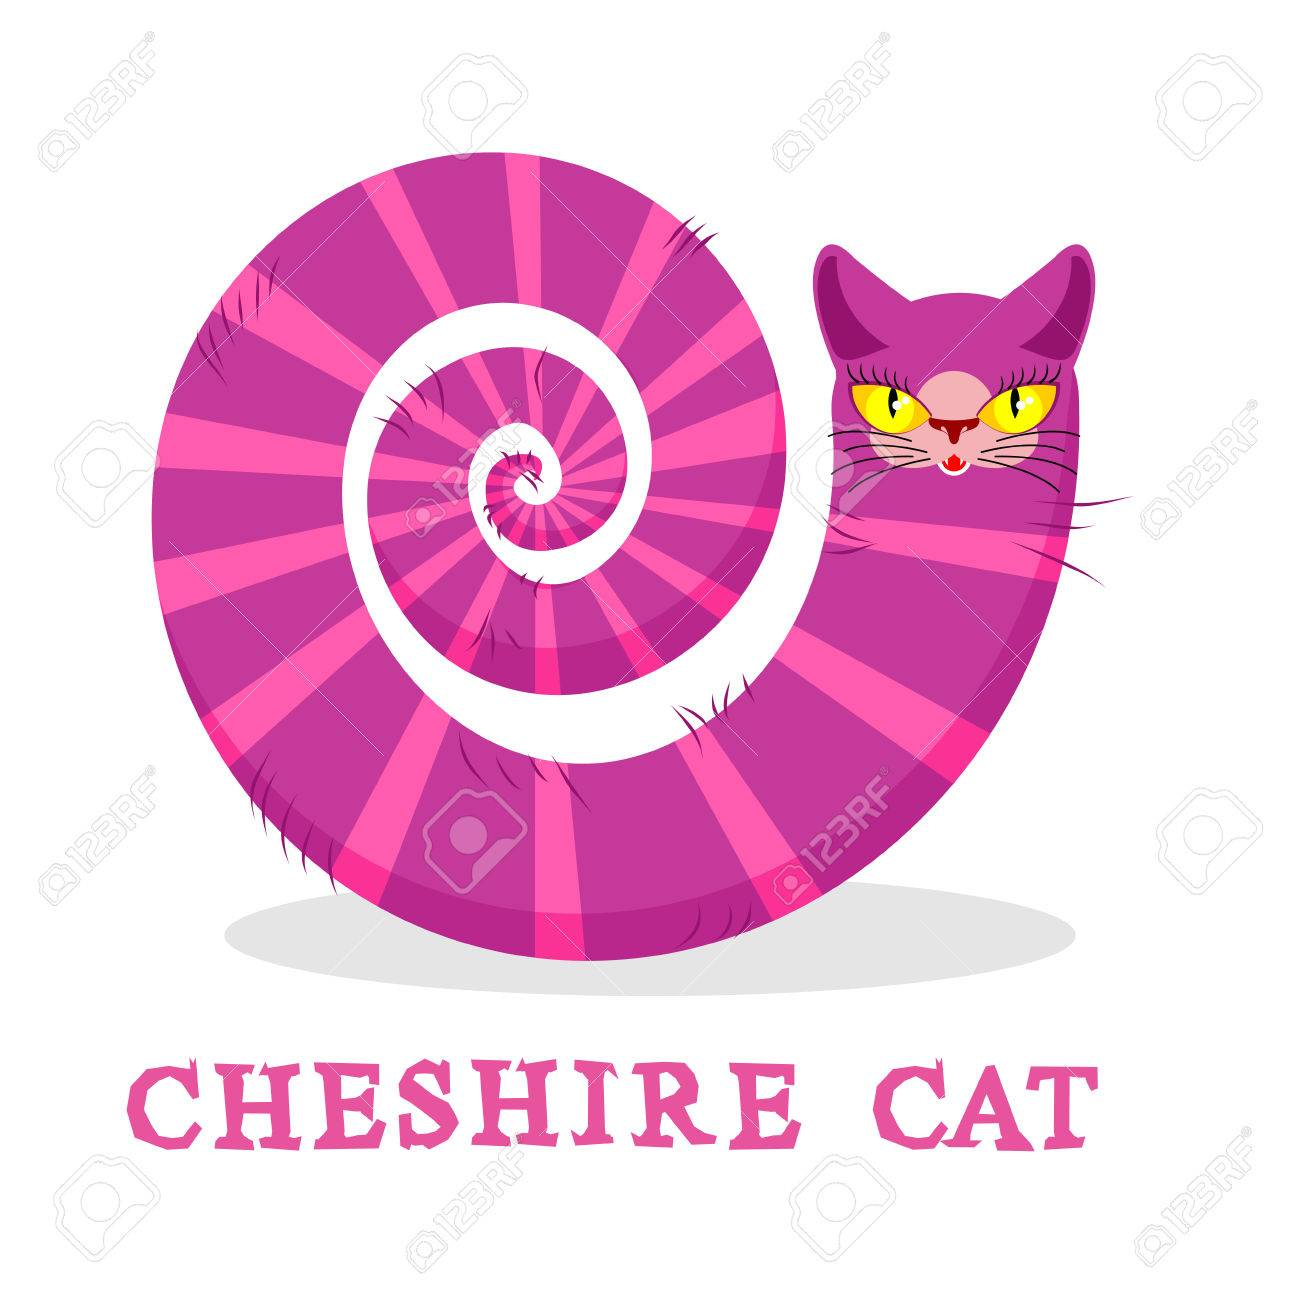 Gato De Cheshire. Animal Mágico Con La Cola Larga. Fairy Tale Rayas ...